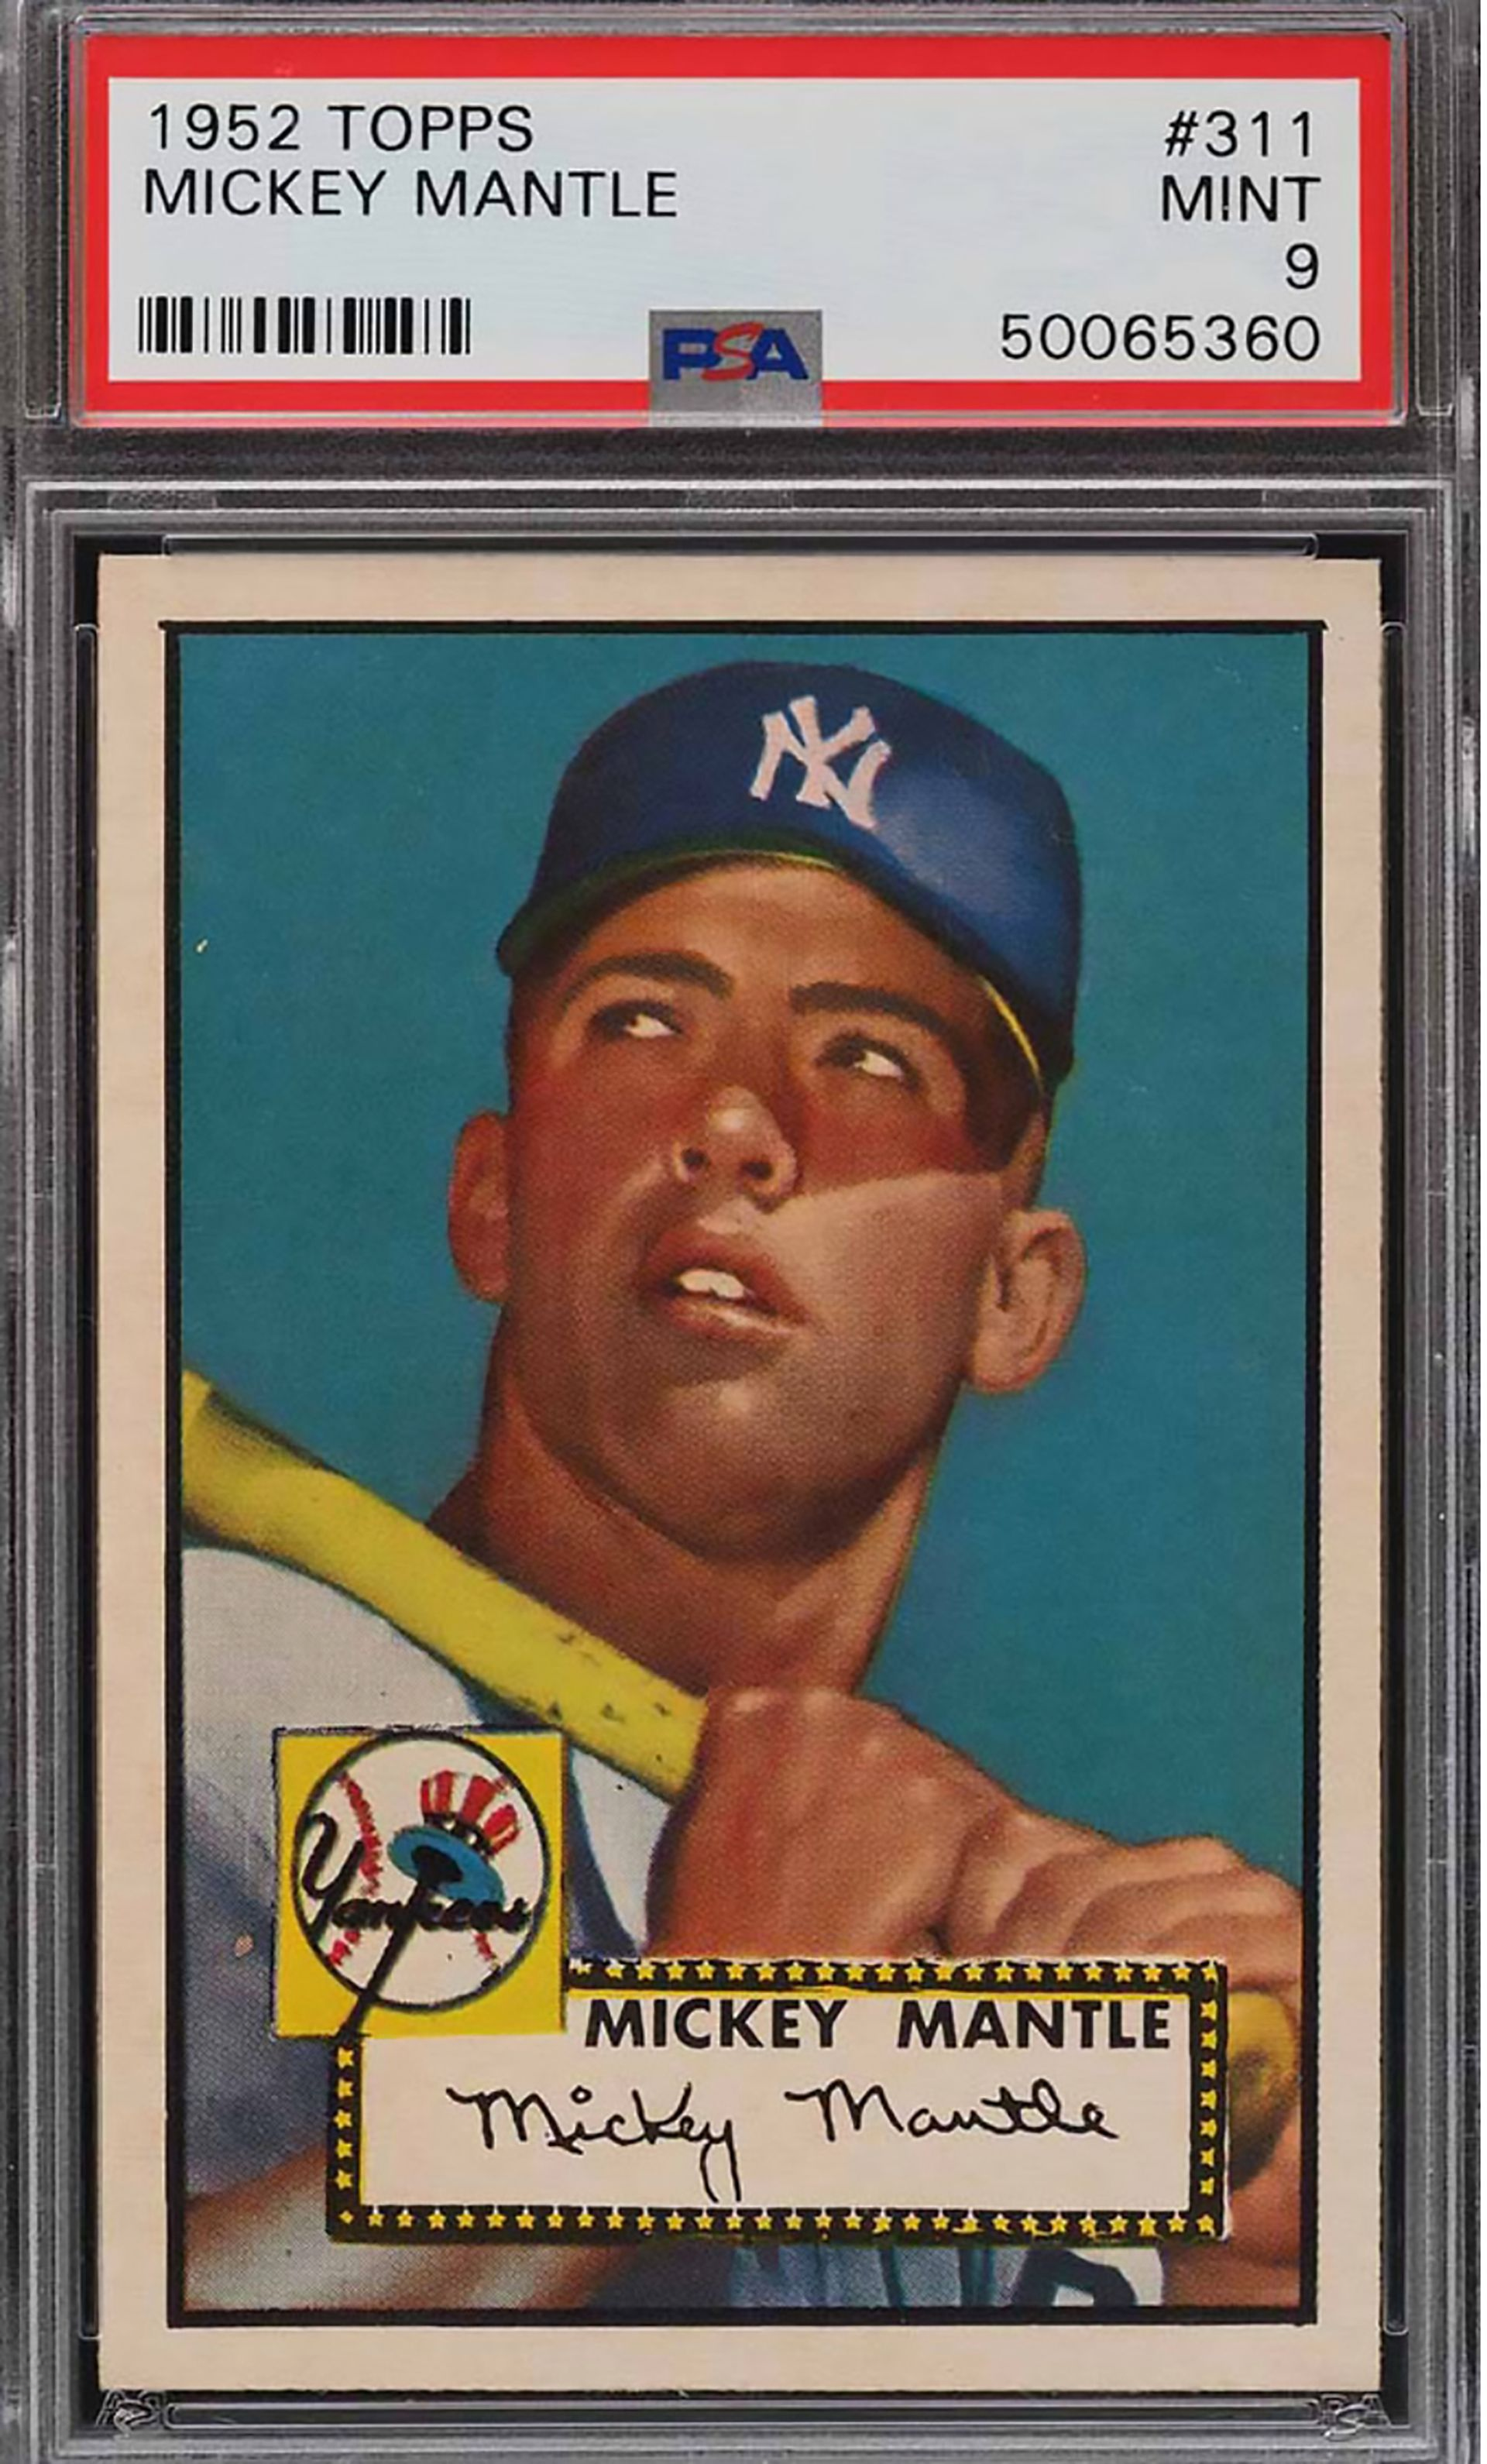 This Mickey Mantle baseball card sold for a record $5.2m in January 2021 via PWCC Marketplace Courtesy of PWCC Marketplace